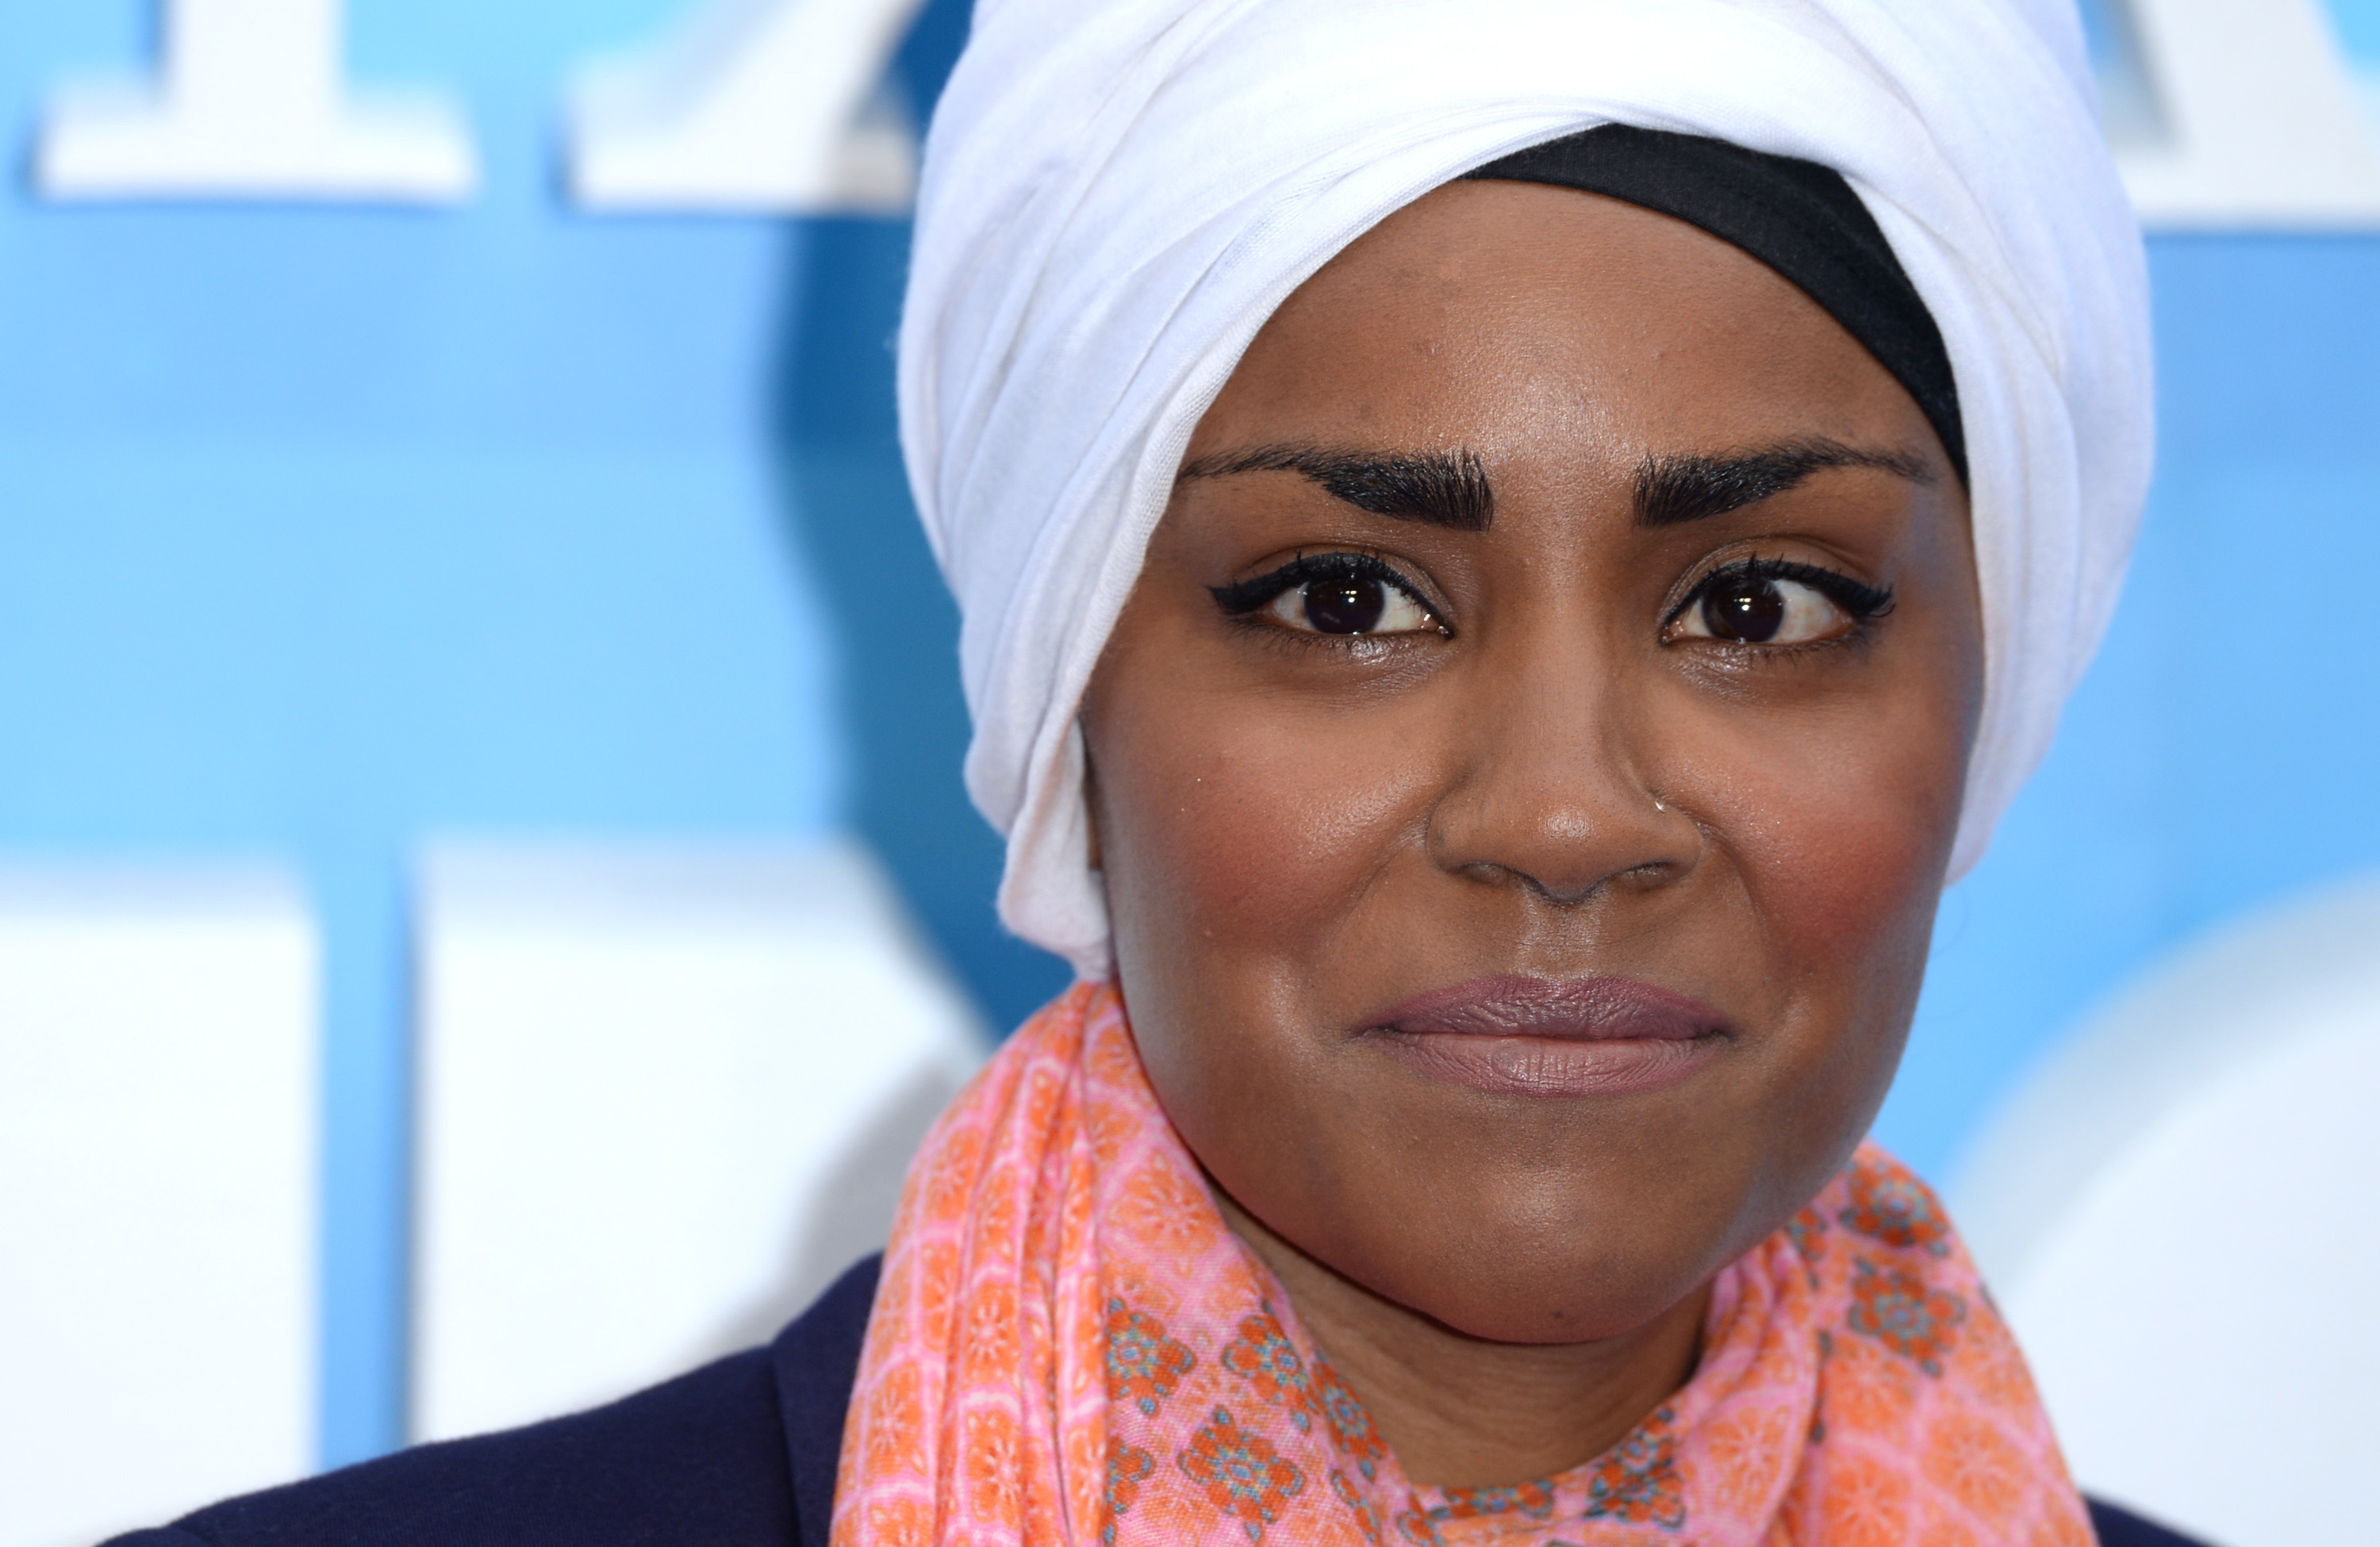 """LONDON, ENGLAND - JULY 10:  Nadiya Hussain attends the UK Premiere of """"Finding Dory"""" at Odeon Leicester Square on July 10, 2016 in London, England.  (Photo by Anthony Harvey/Getty Images)"""